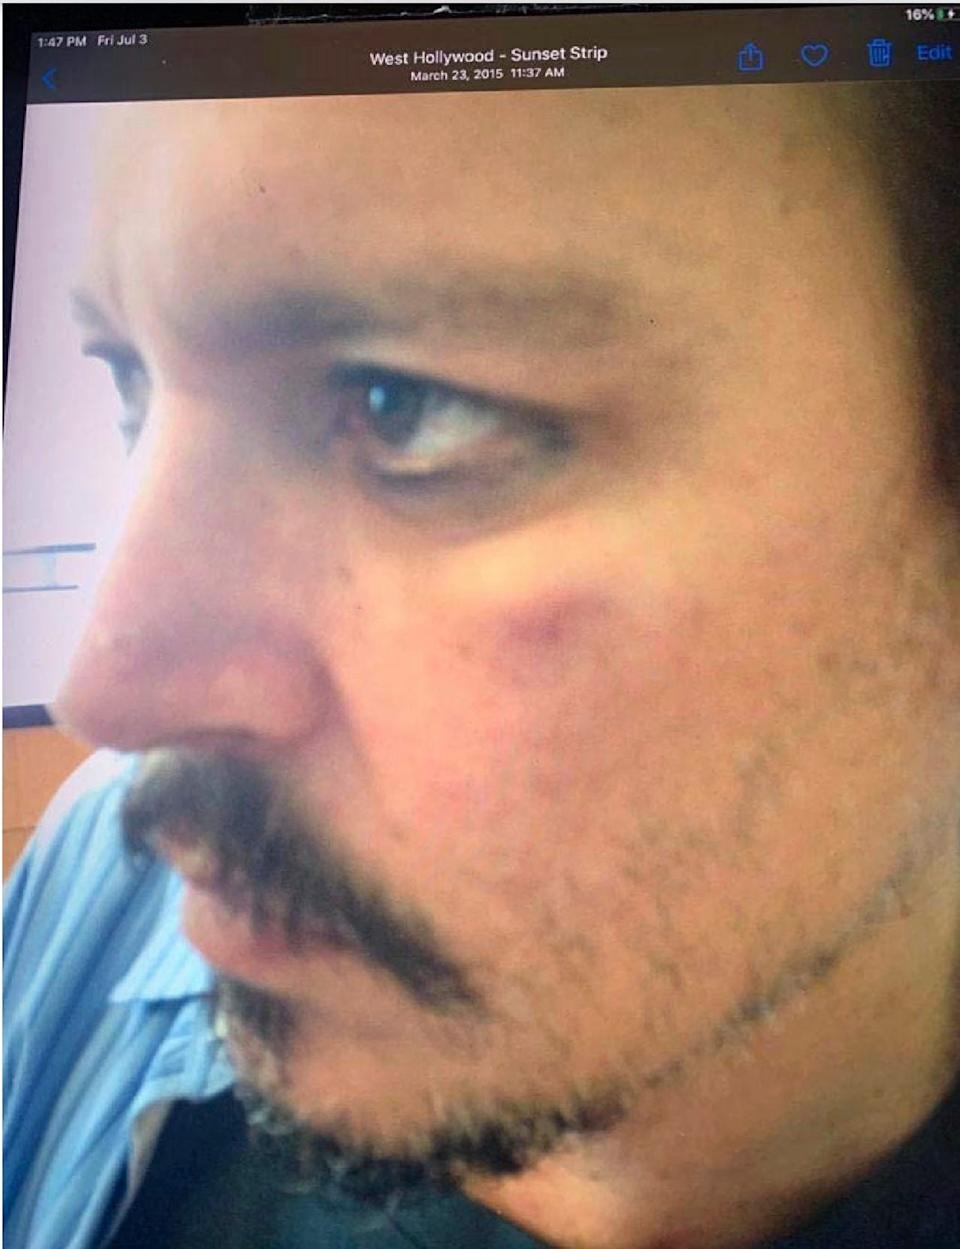 A photo of Johnny Depp with injuries allegedly sustained from Amber Heard during an incident in Los Angeles in March 2015, and included as an exhibit in the trial of Depp's libel suit in London.